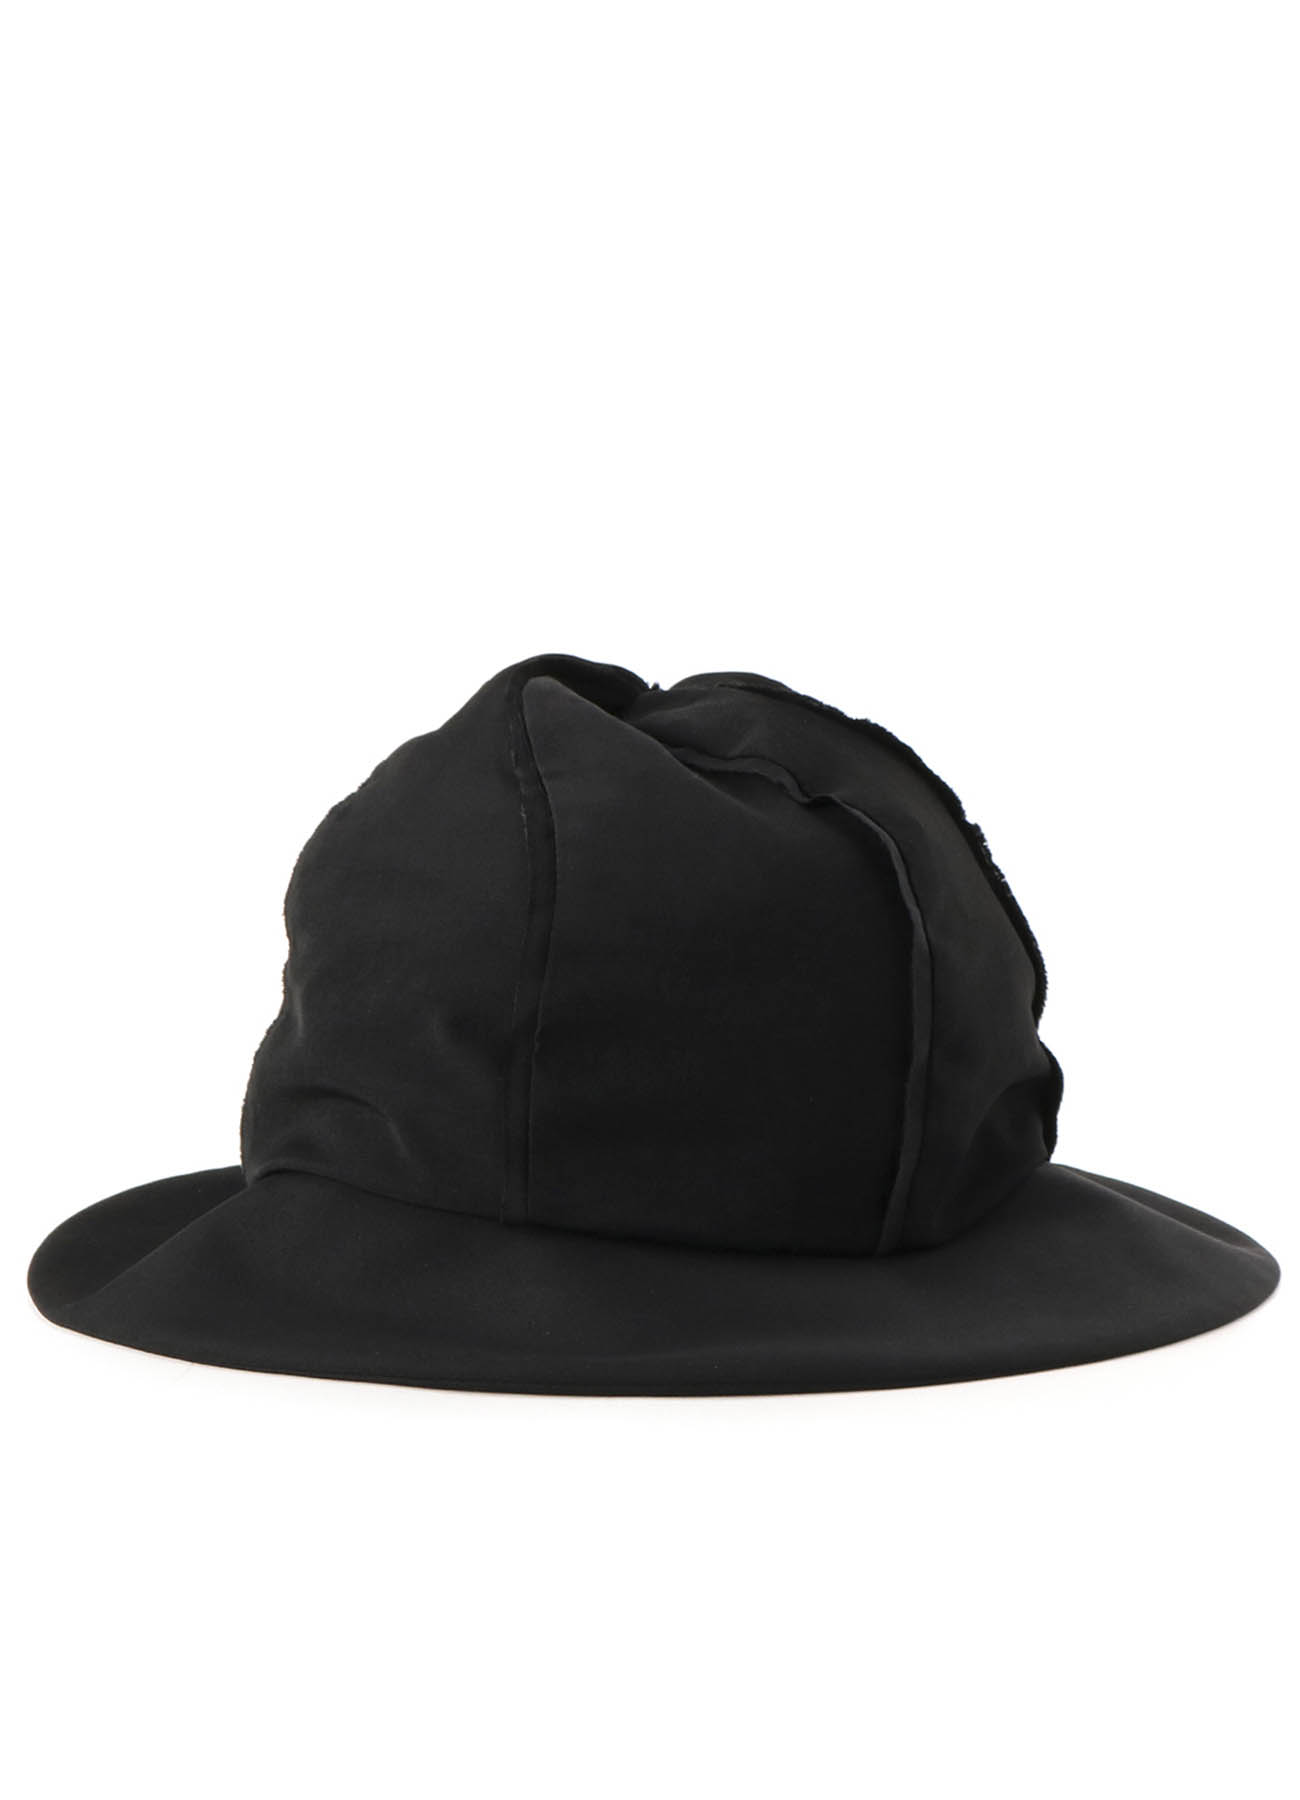 DECYN TWIST HAT